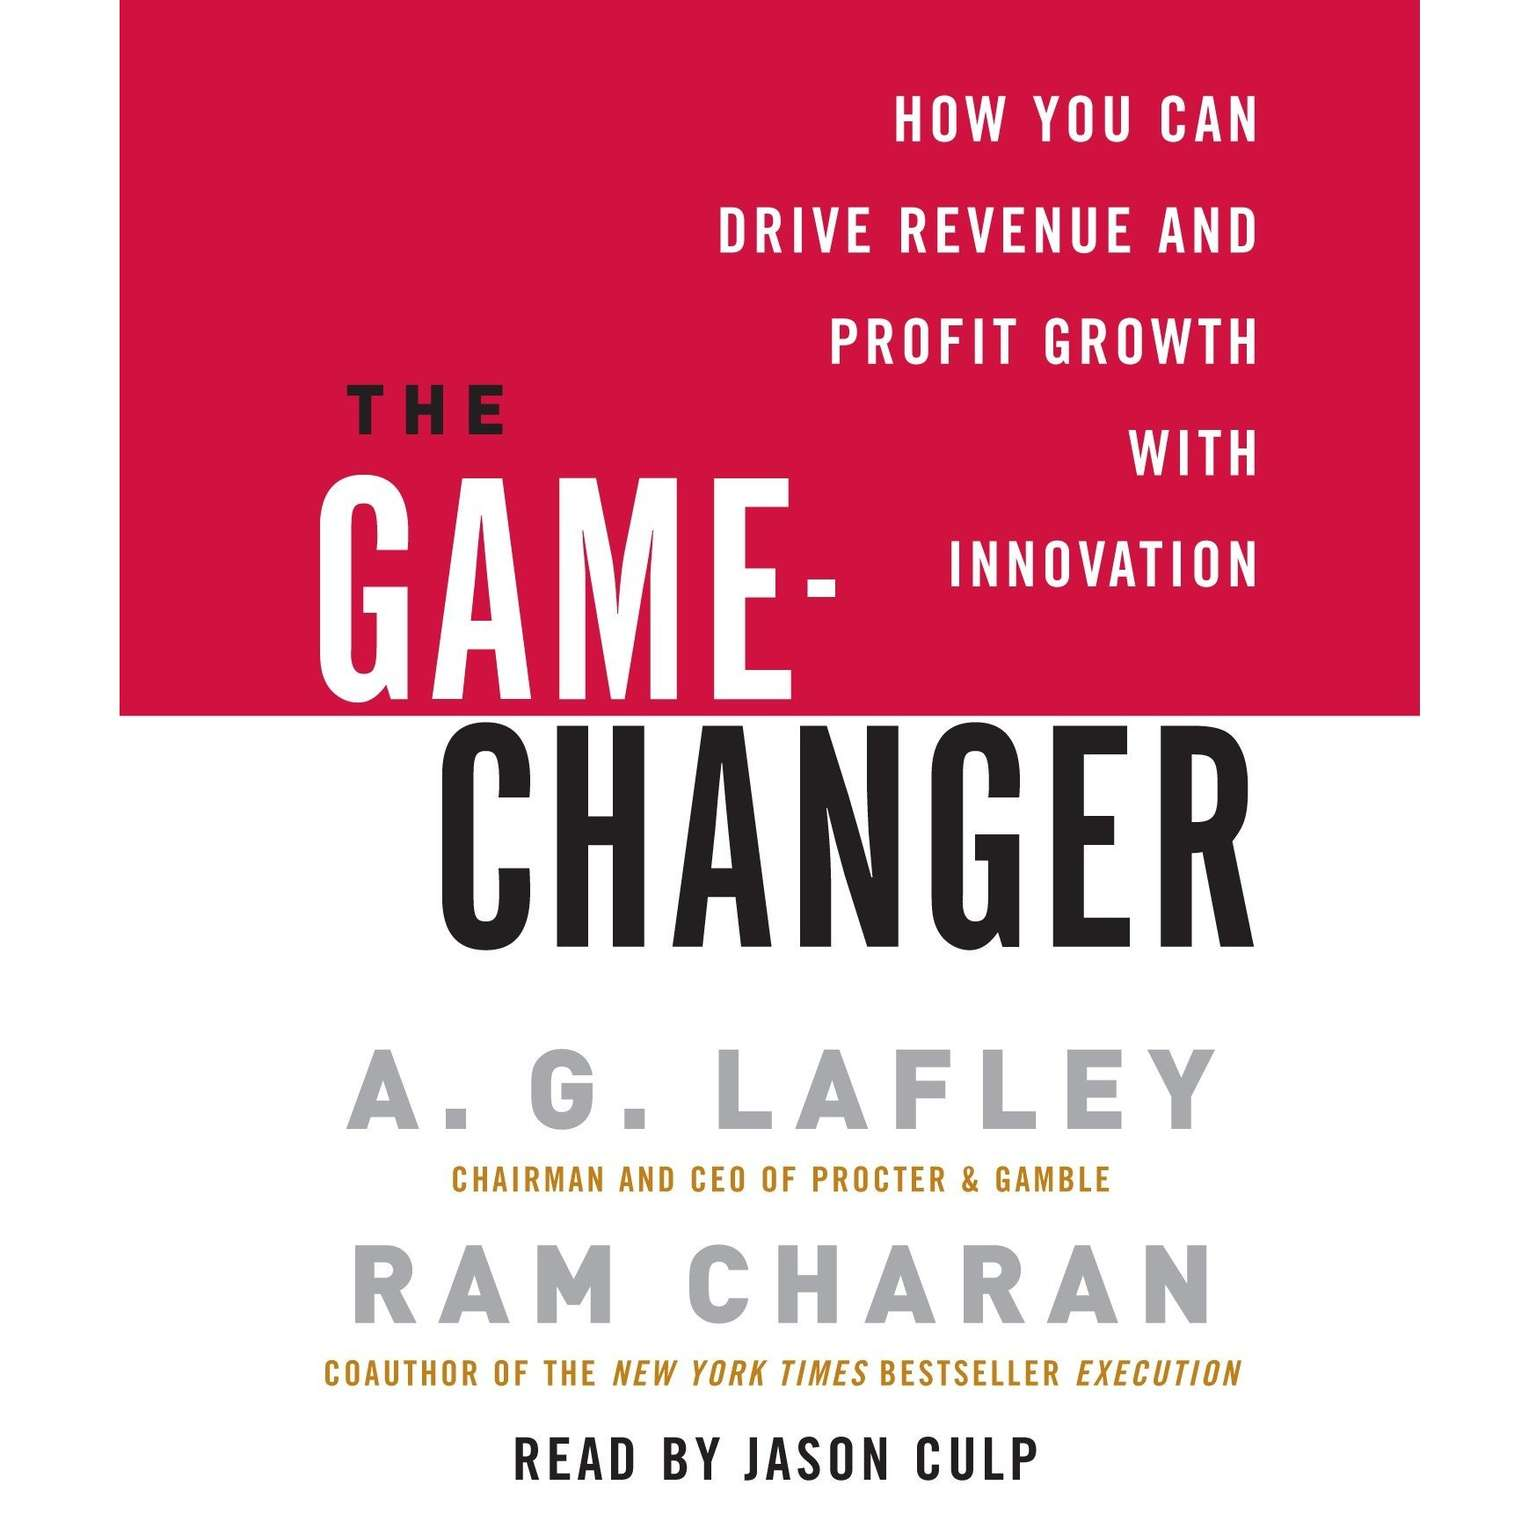 The Game-Changer (Abridged): How You Can Drive Revenue and Profit Growth with Innovation Audiobook, by A. G. Lafley